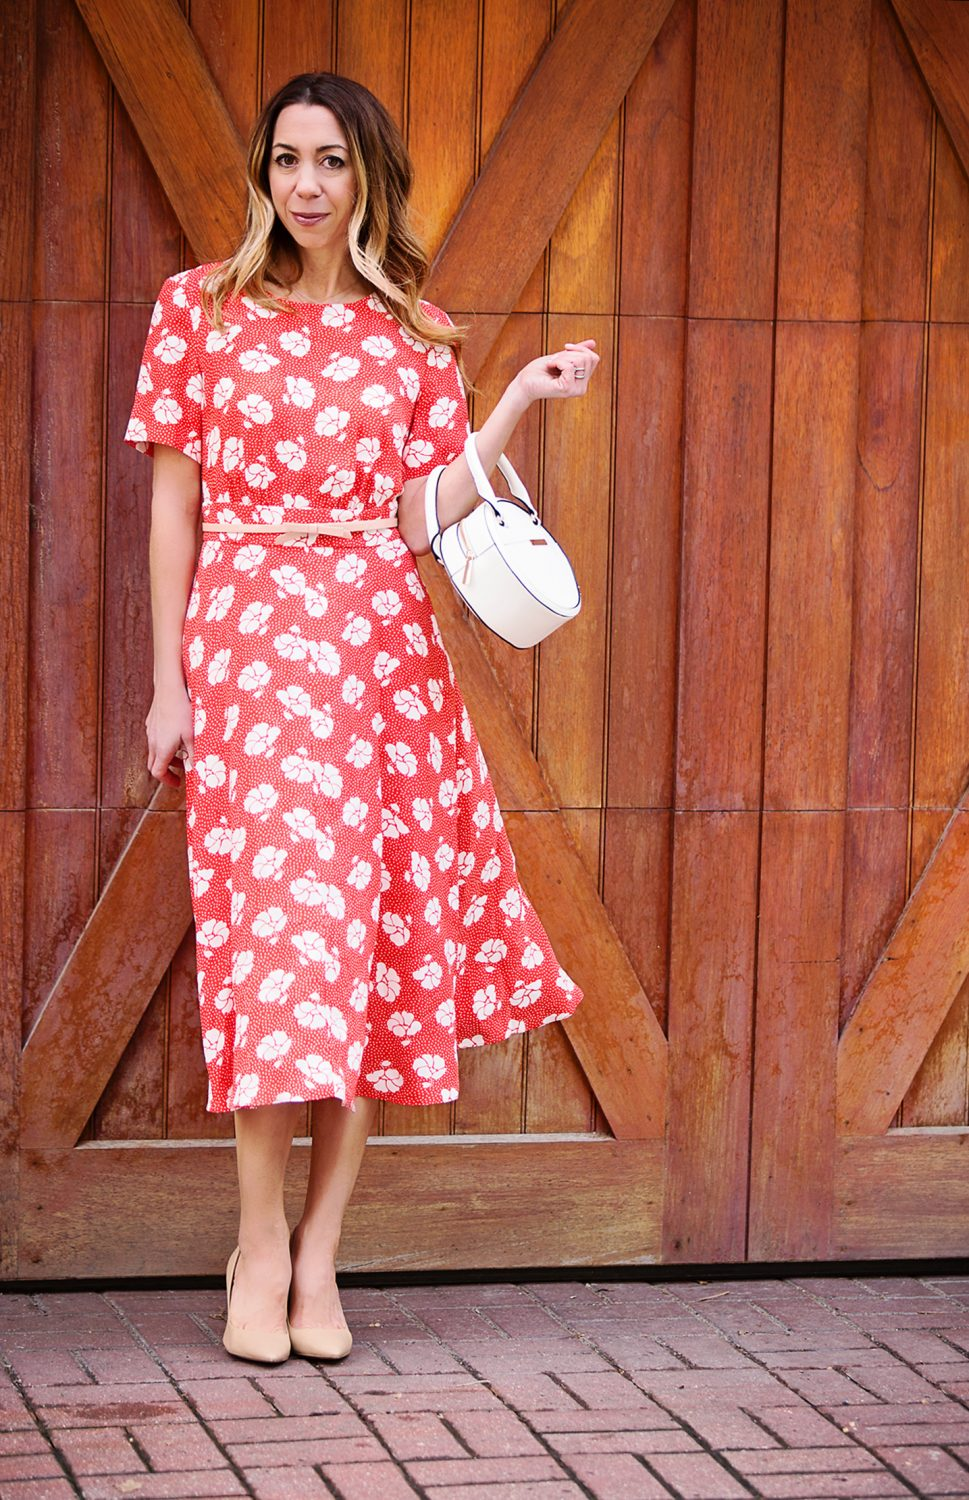 The Motherchic wearing a floral dress from Boden